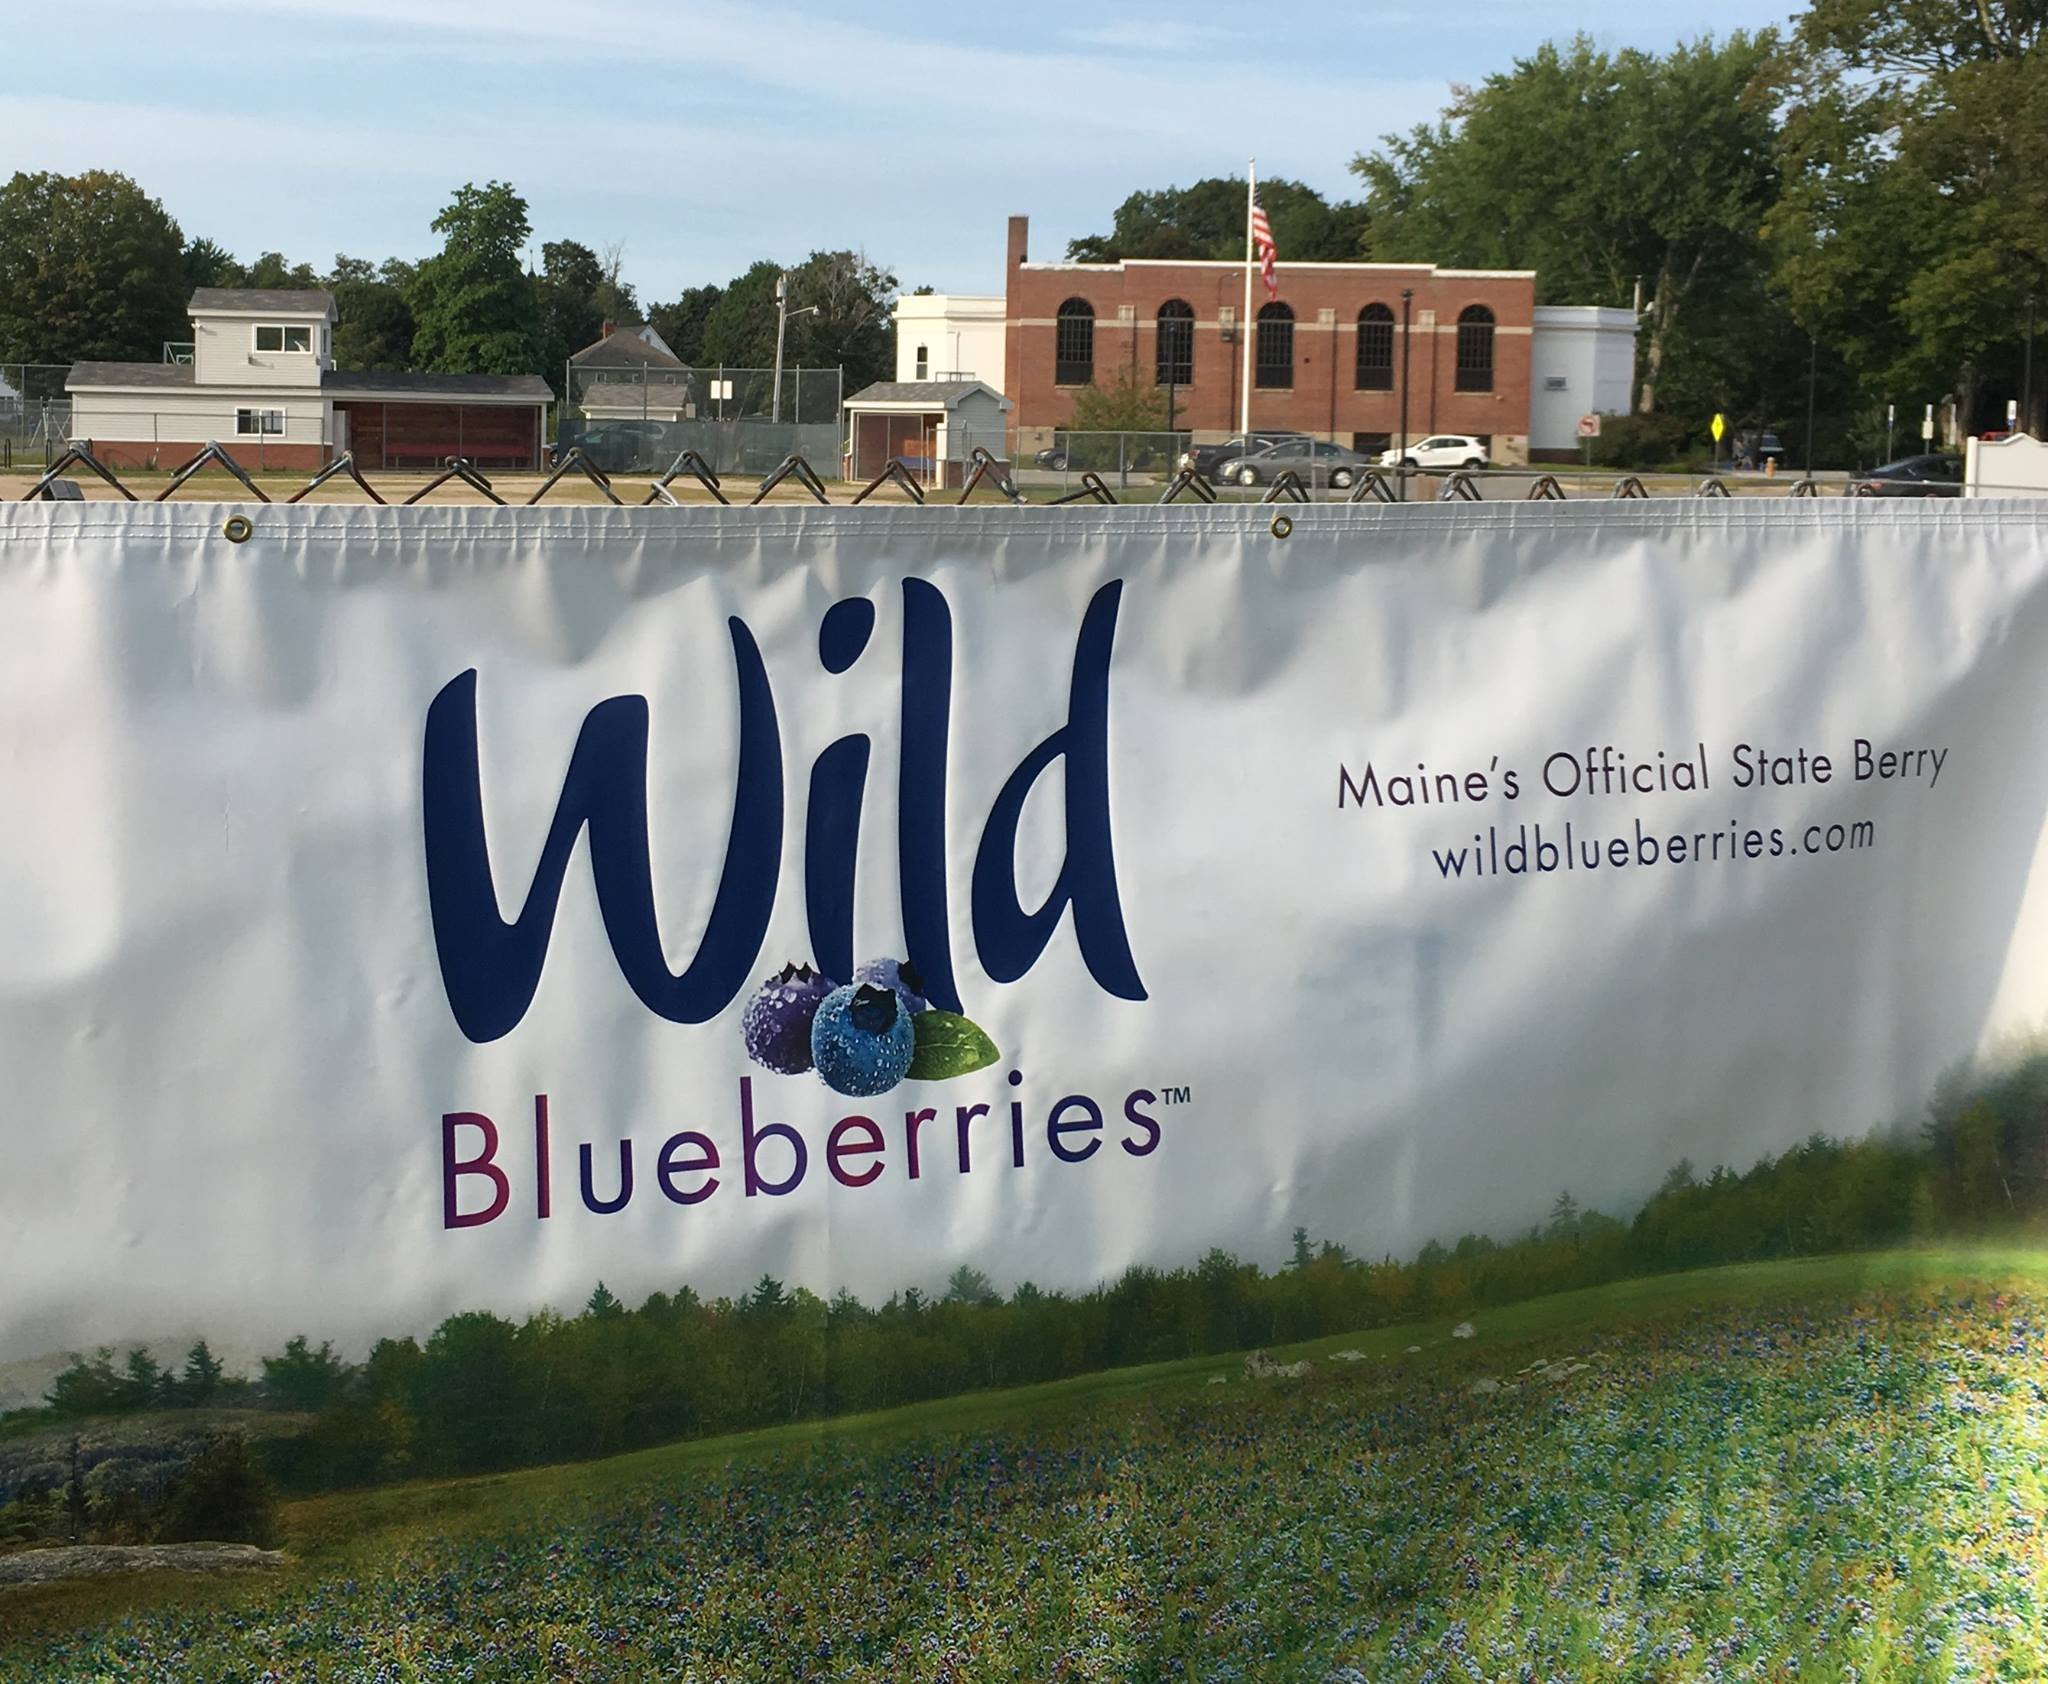 Banner on loan from the Wild Blueberry Commission of Maine